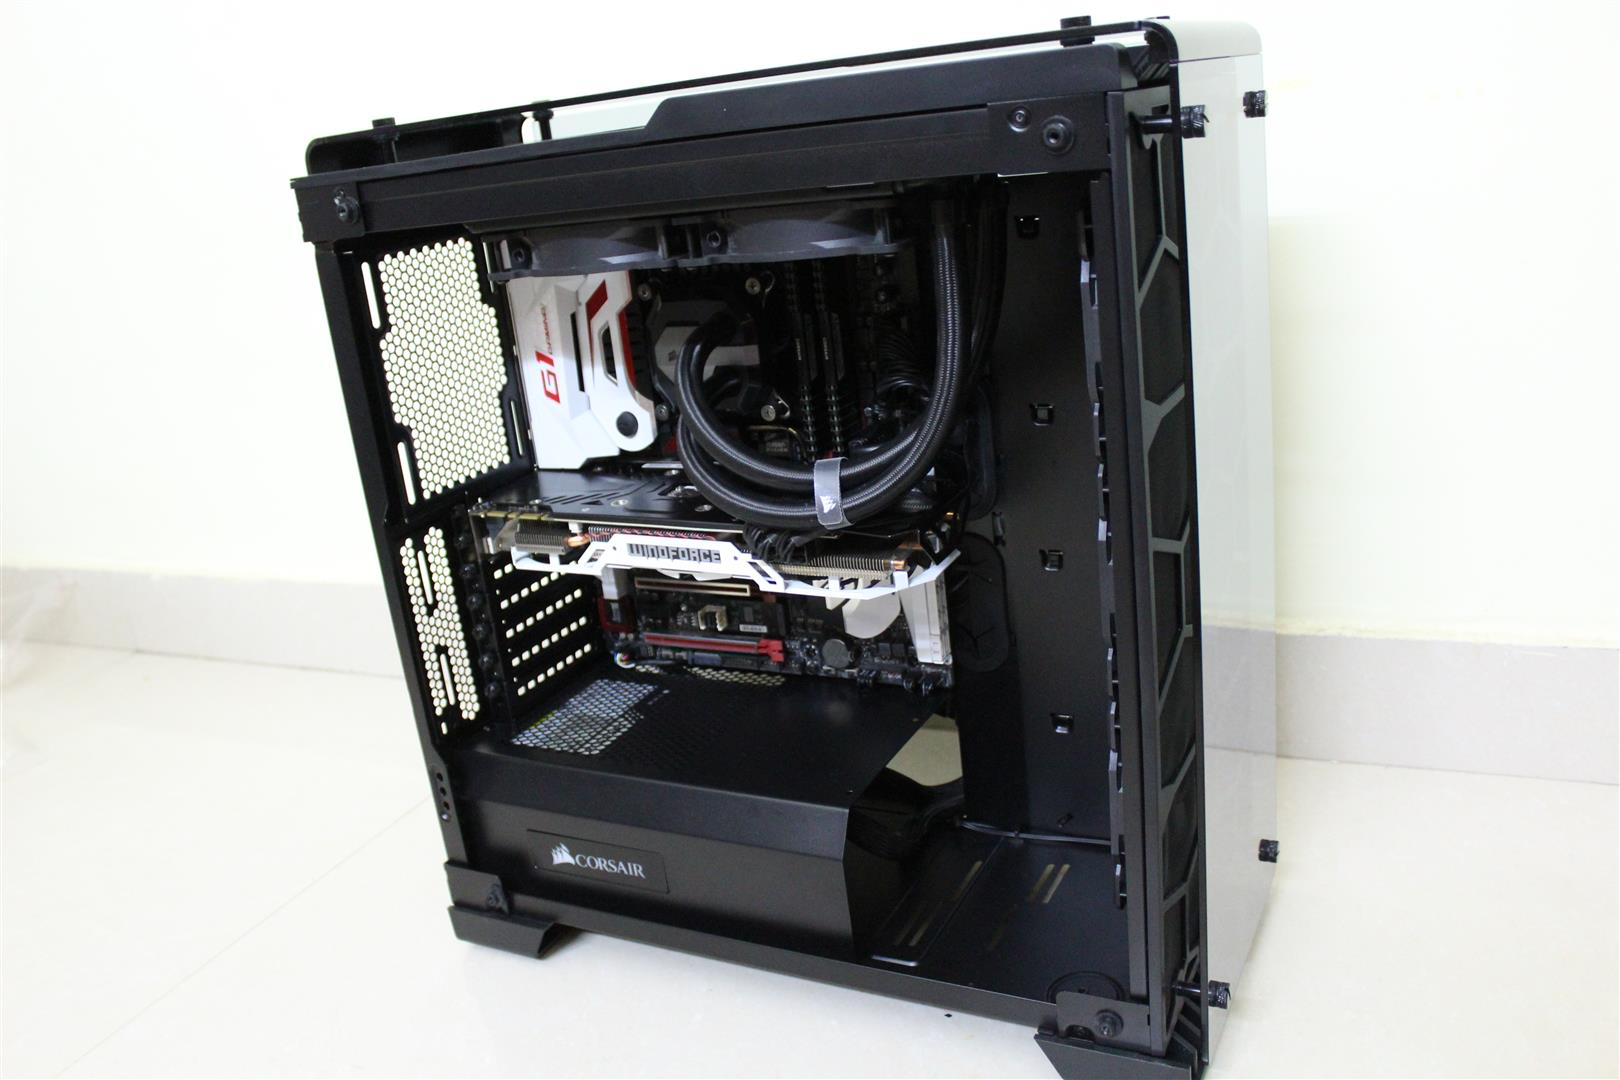 Corsair Crystal Series 570x Rgb Case Review Pc Tek Reviews Black One Thing That Catches My Attention As Can See The Psu Cover In This Needs Something To Big Opening Front And You